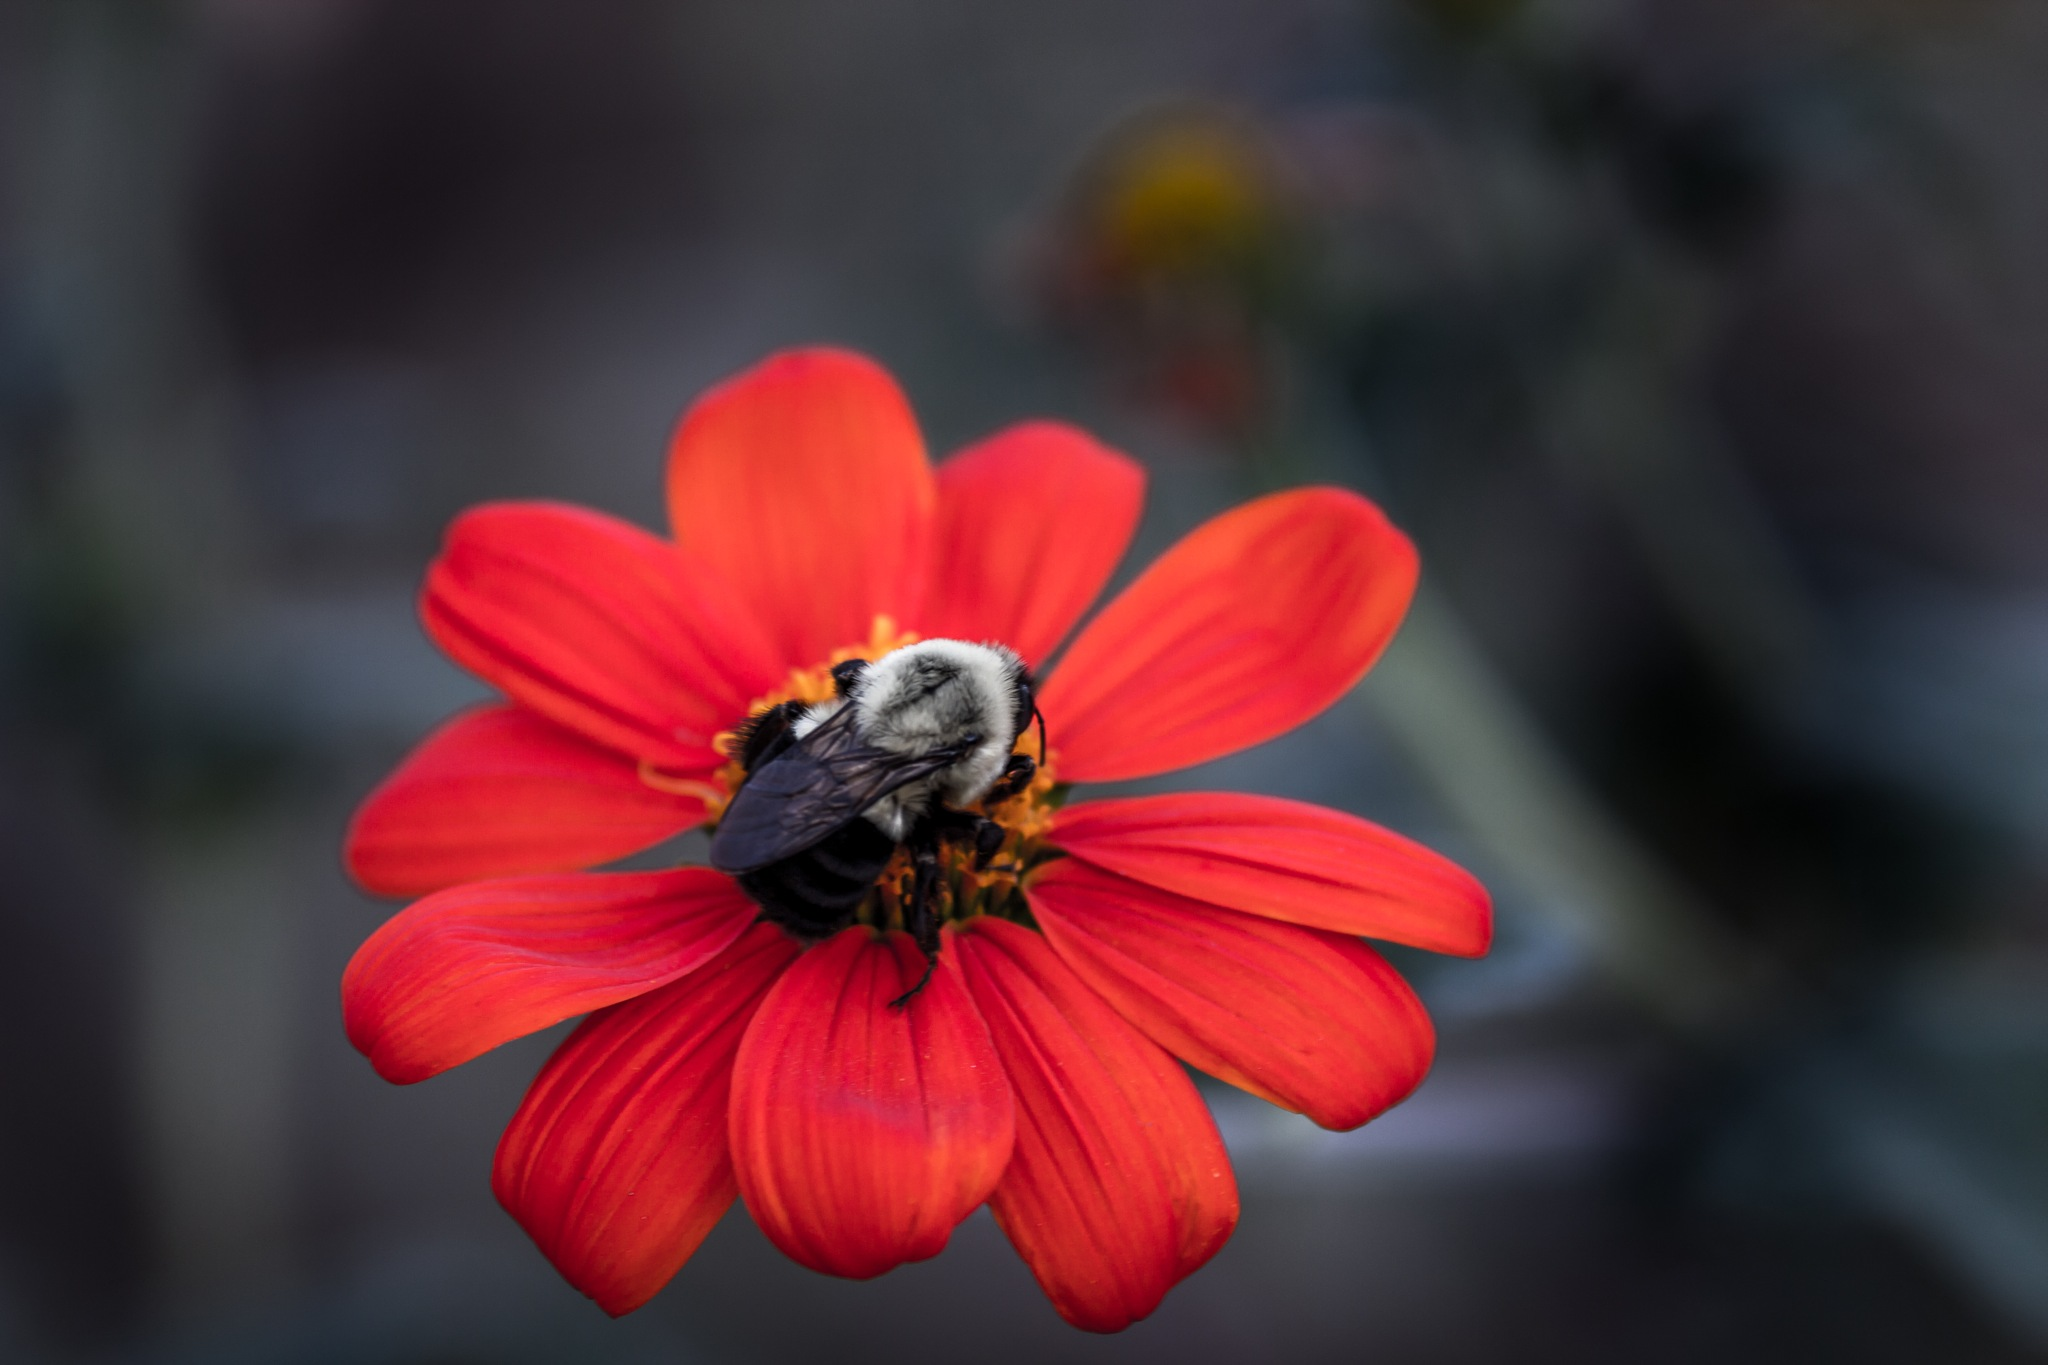 Red Buzzing Flower by MF - SyracuseLUX